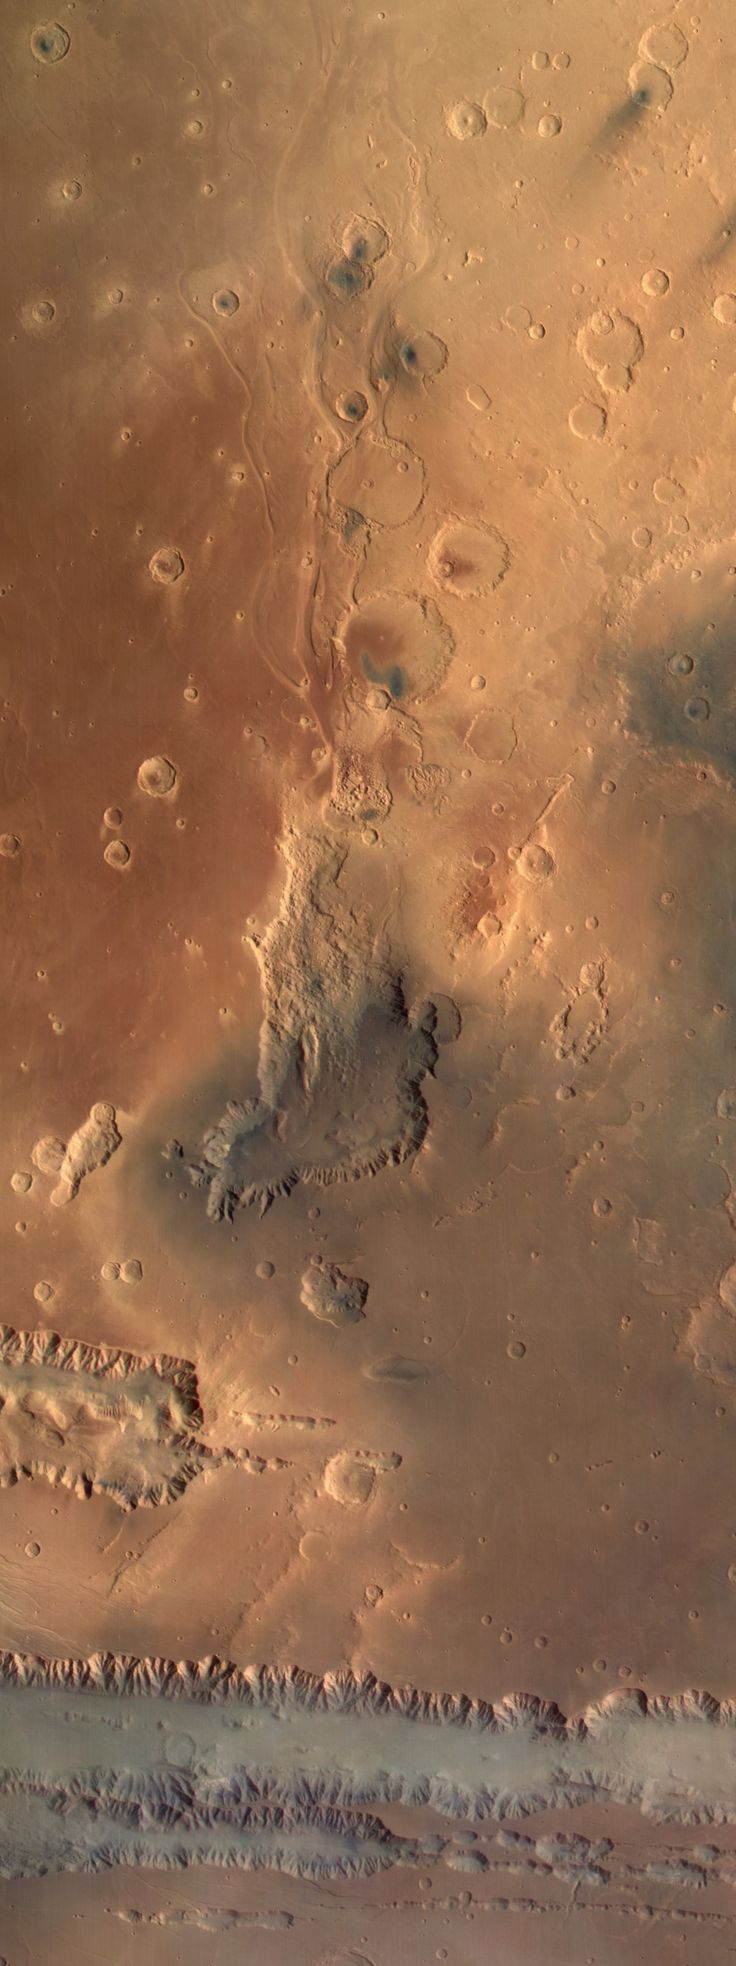 The Mars Express orbiter captured this striking view of rugged Martian landscapes extending from a mist-filled Coprates Chasma in the south, to Juventae Chasma and the outflow channels of Maja Valles in the north. Juventae Chasma, the box canyon near the center of the image, is about 100 km wide.